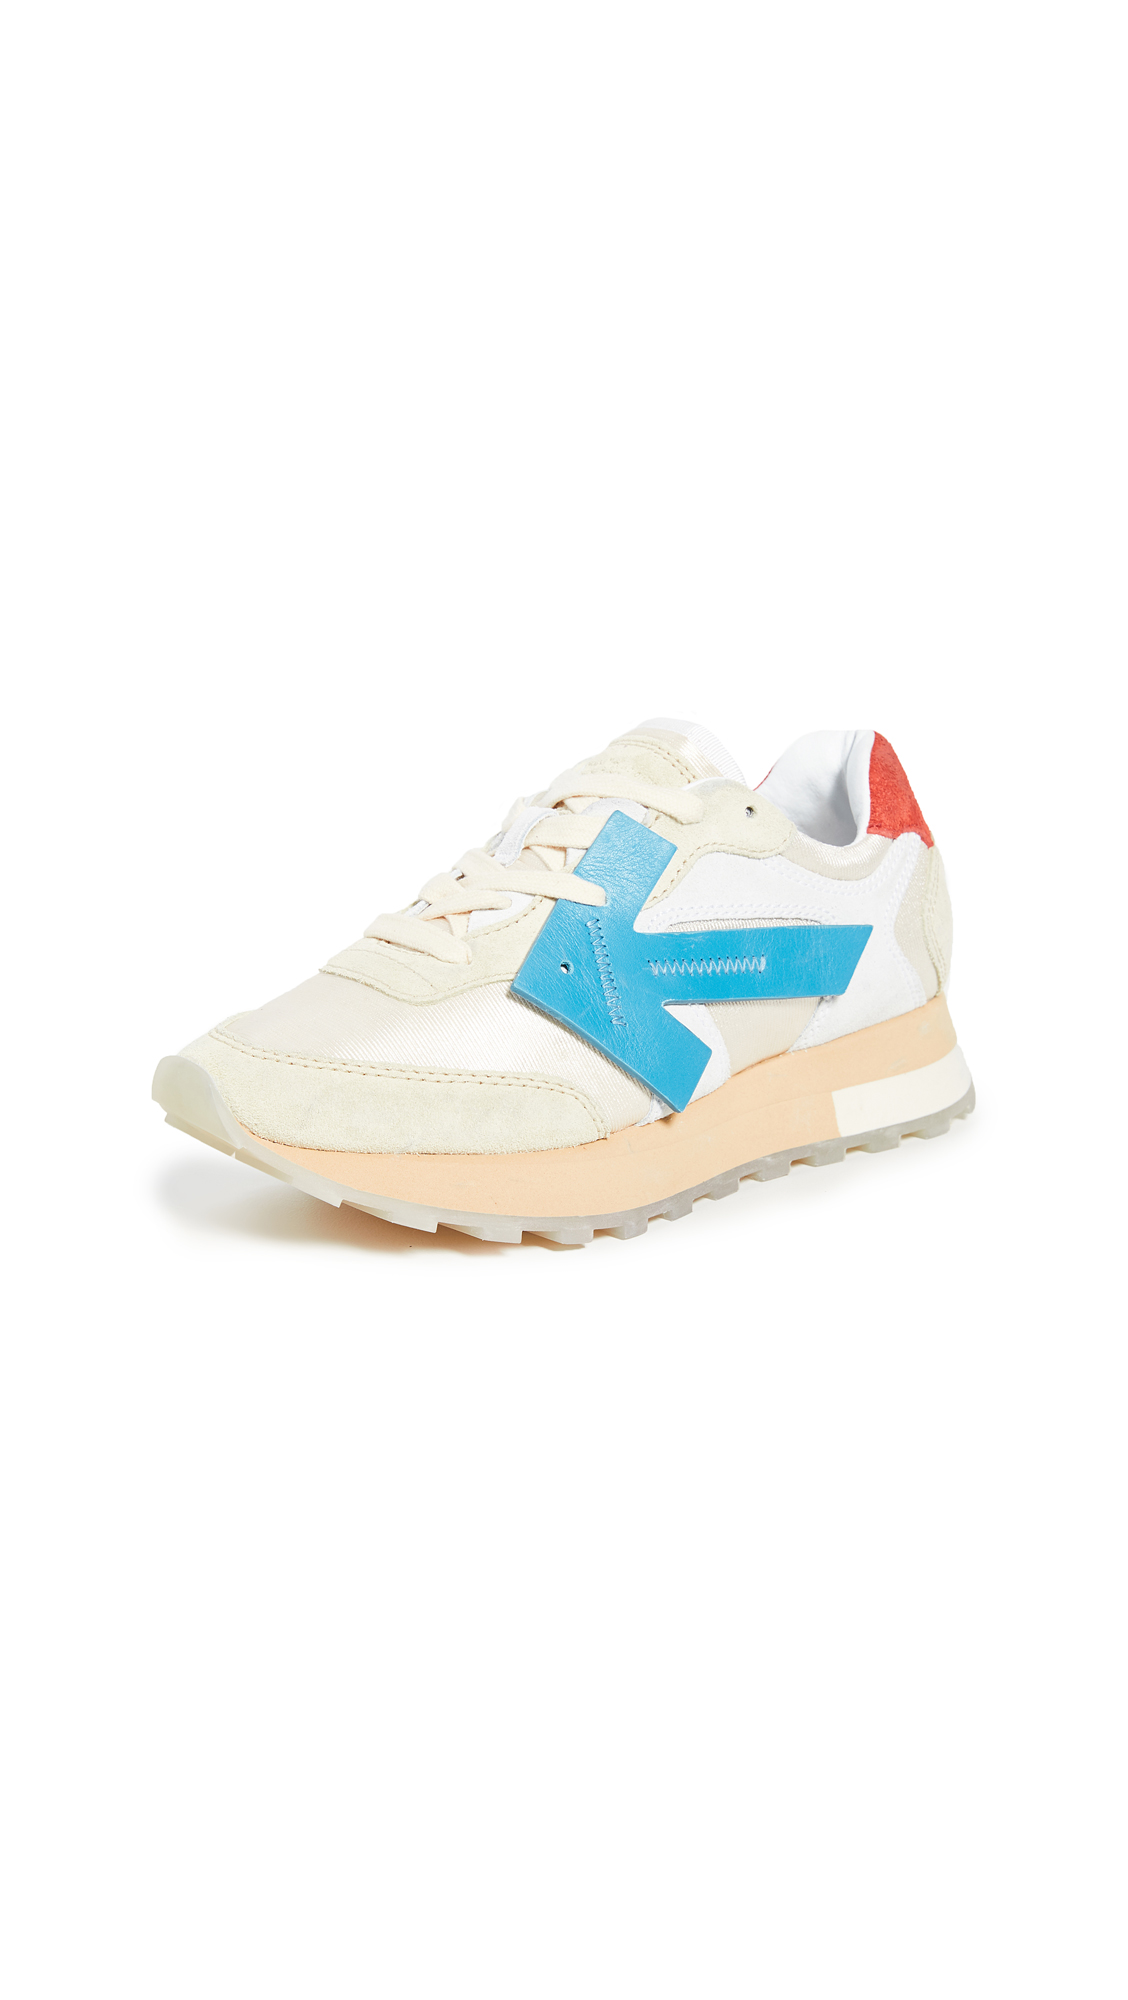 Off-White Hg Runner Low-Top Suede Sneakers In White/Blue